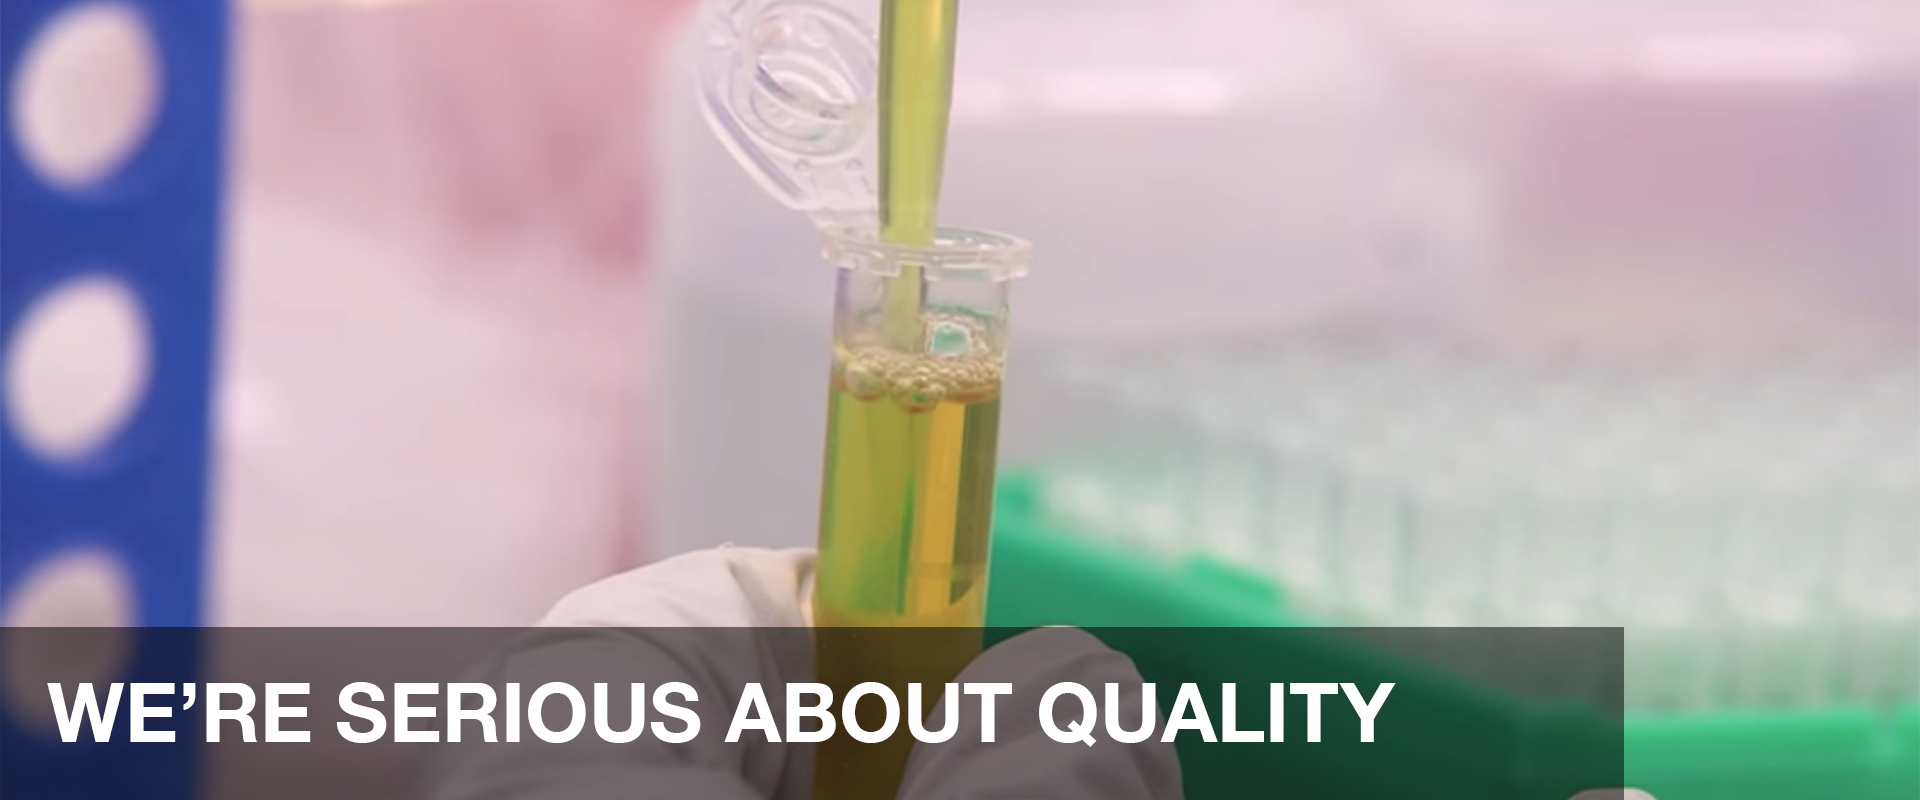 WE'RE SERIOUS ABOUT QUALITY